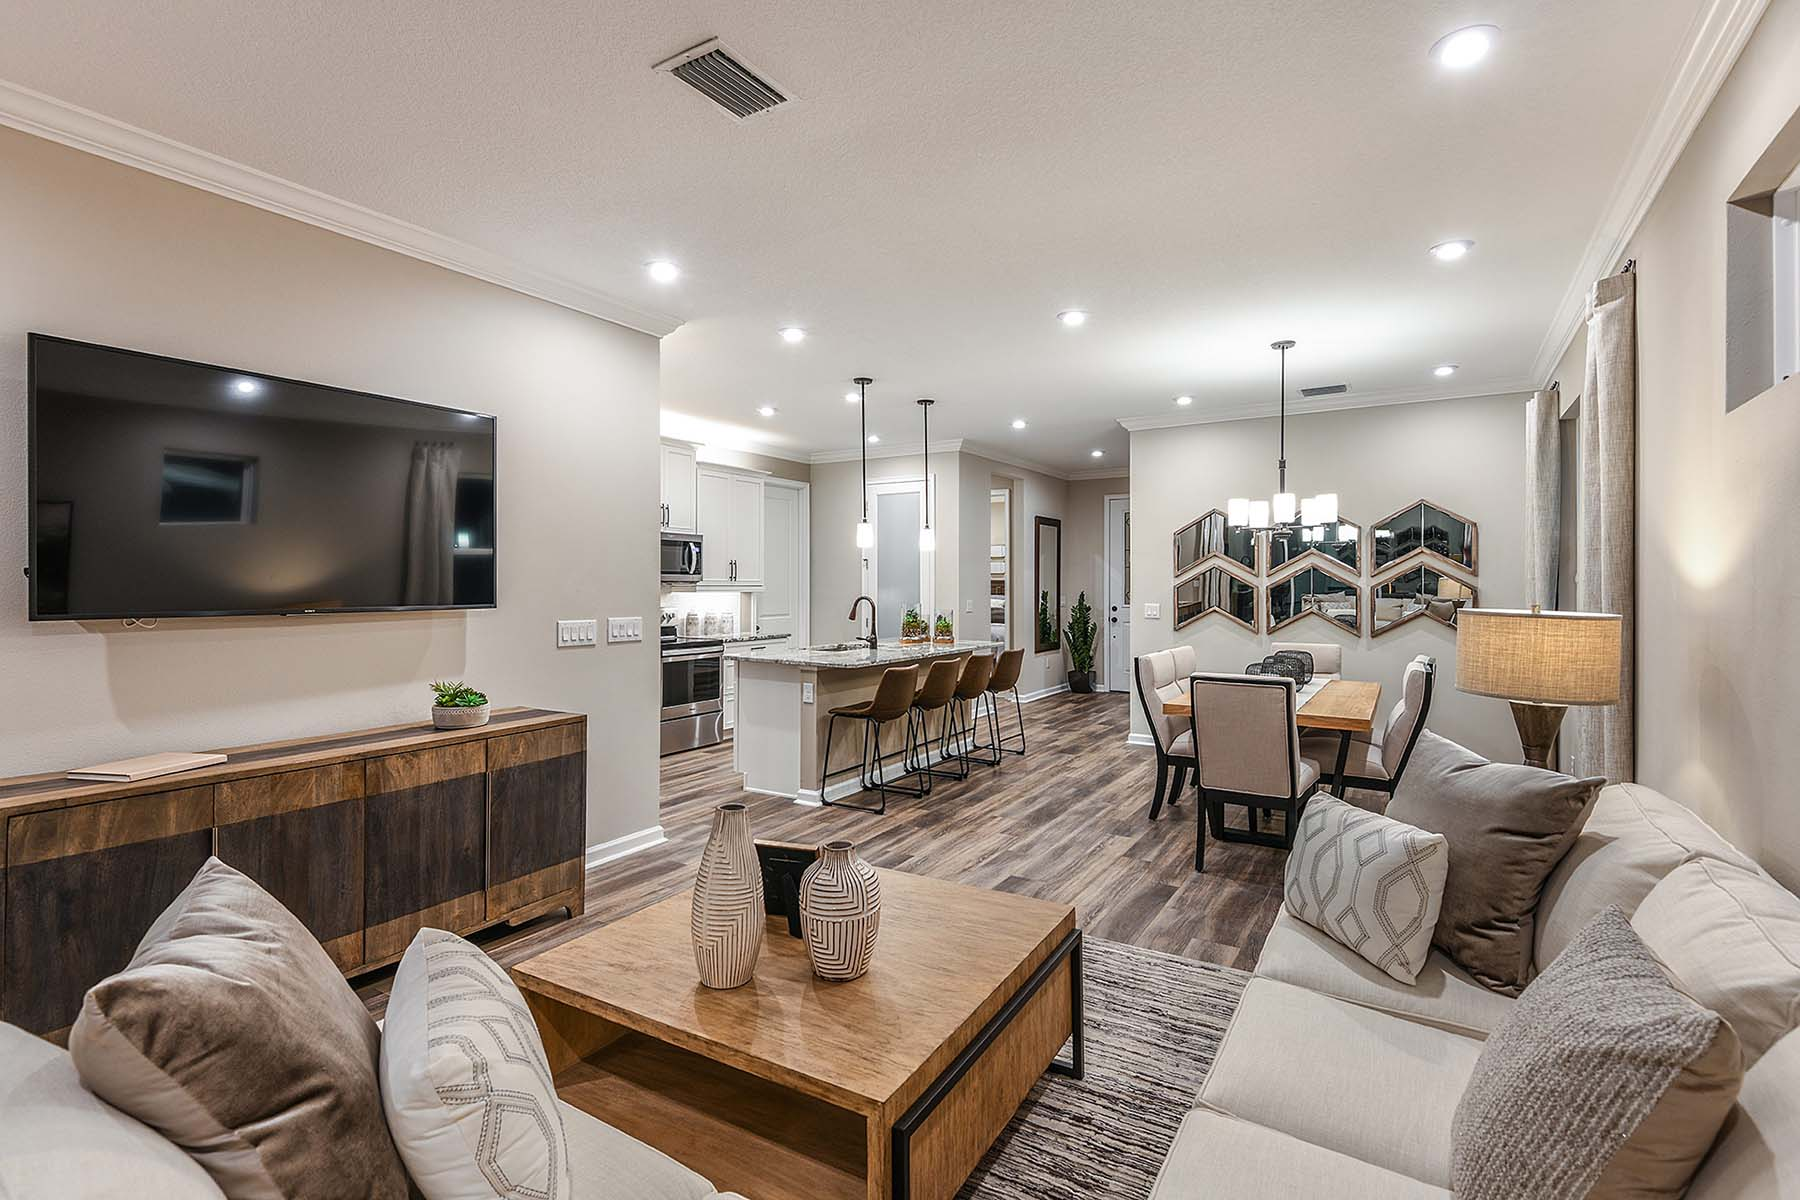 Largo Plan Greatroom at Bonavie Cove in Fort Myers Florida by Mattamy Homes